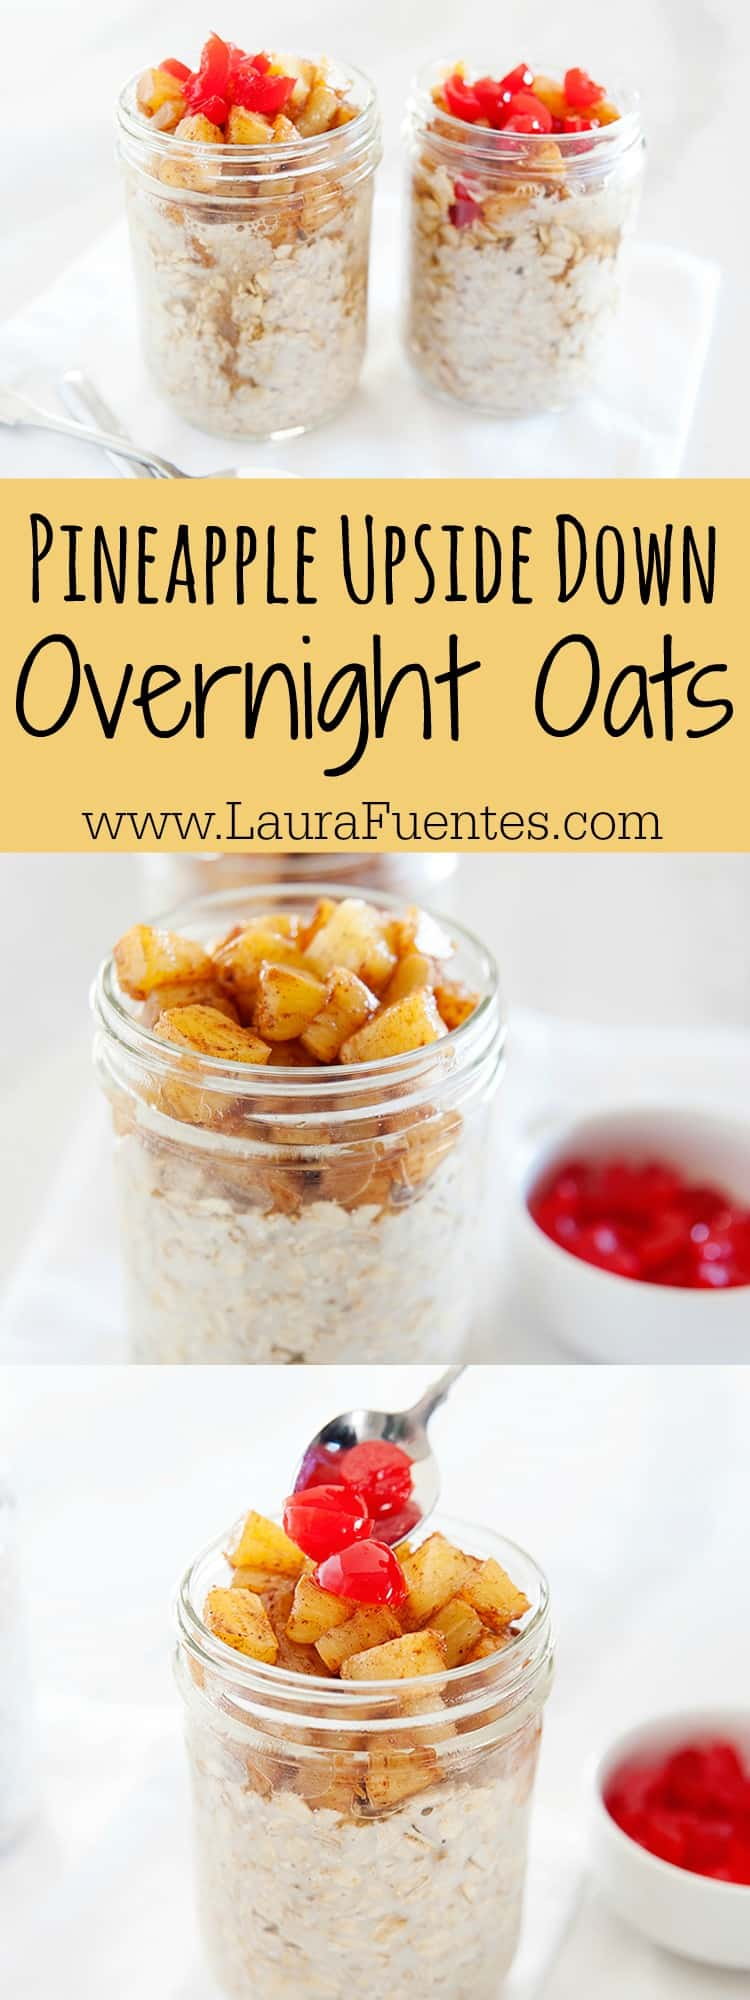 Fresh breakfast on the go? Piece of cake with these Pineapple Upside Down Cake Overnight Oats.